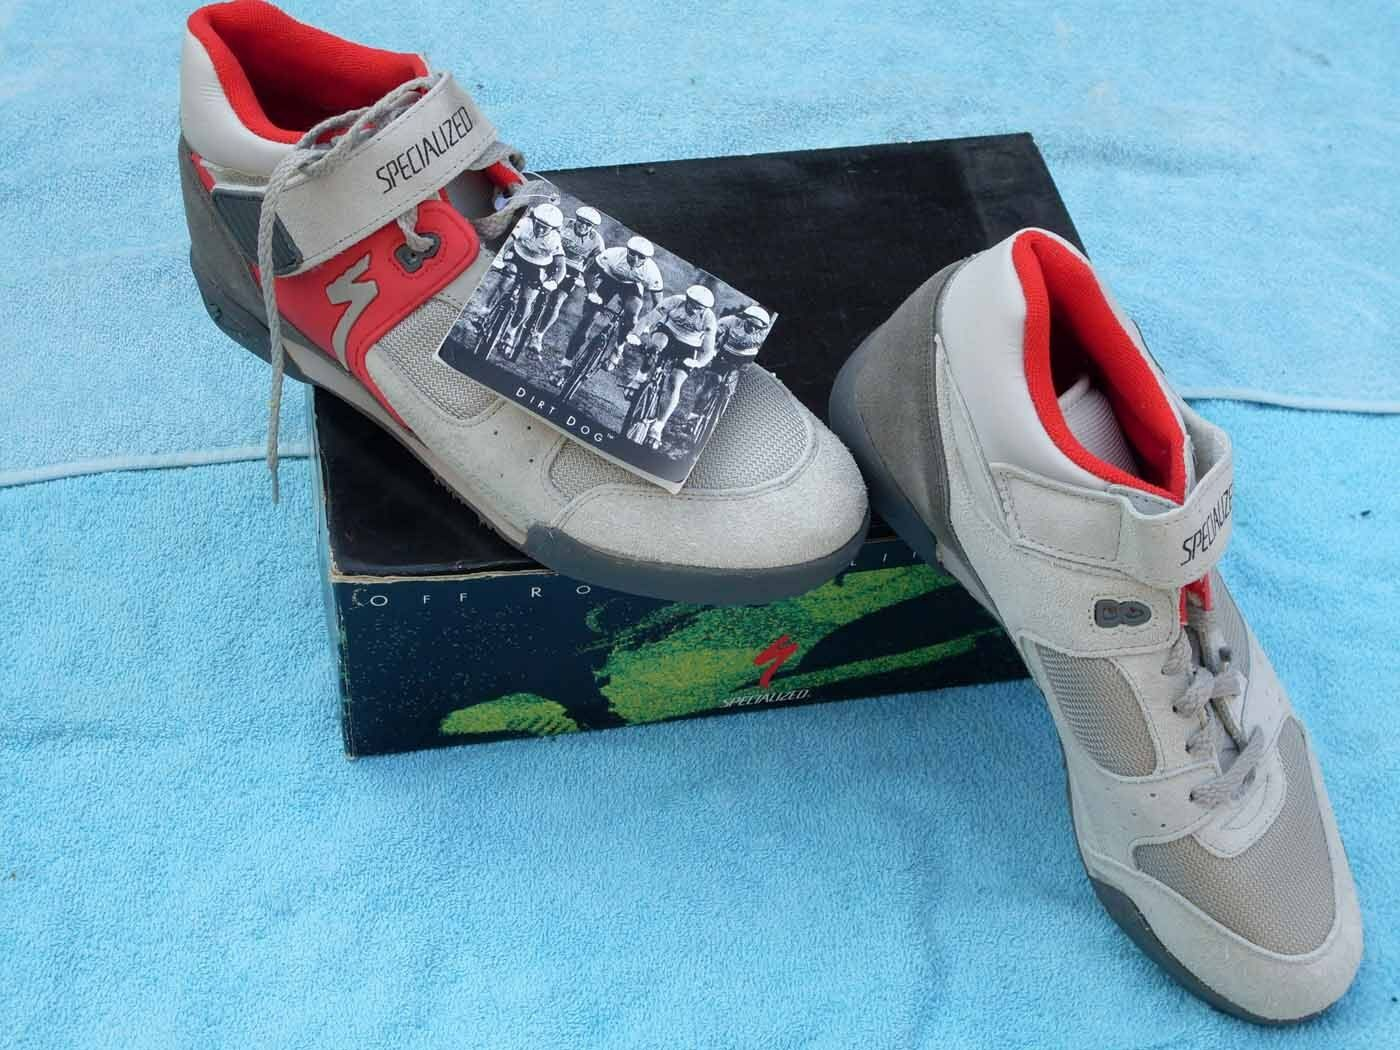 New Cycling shoes Specialized size  US 11 dirty dog grey red  free shipping & exchanges.